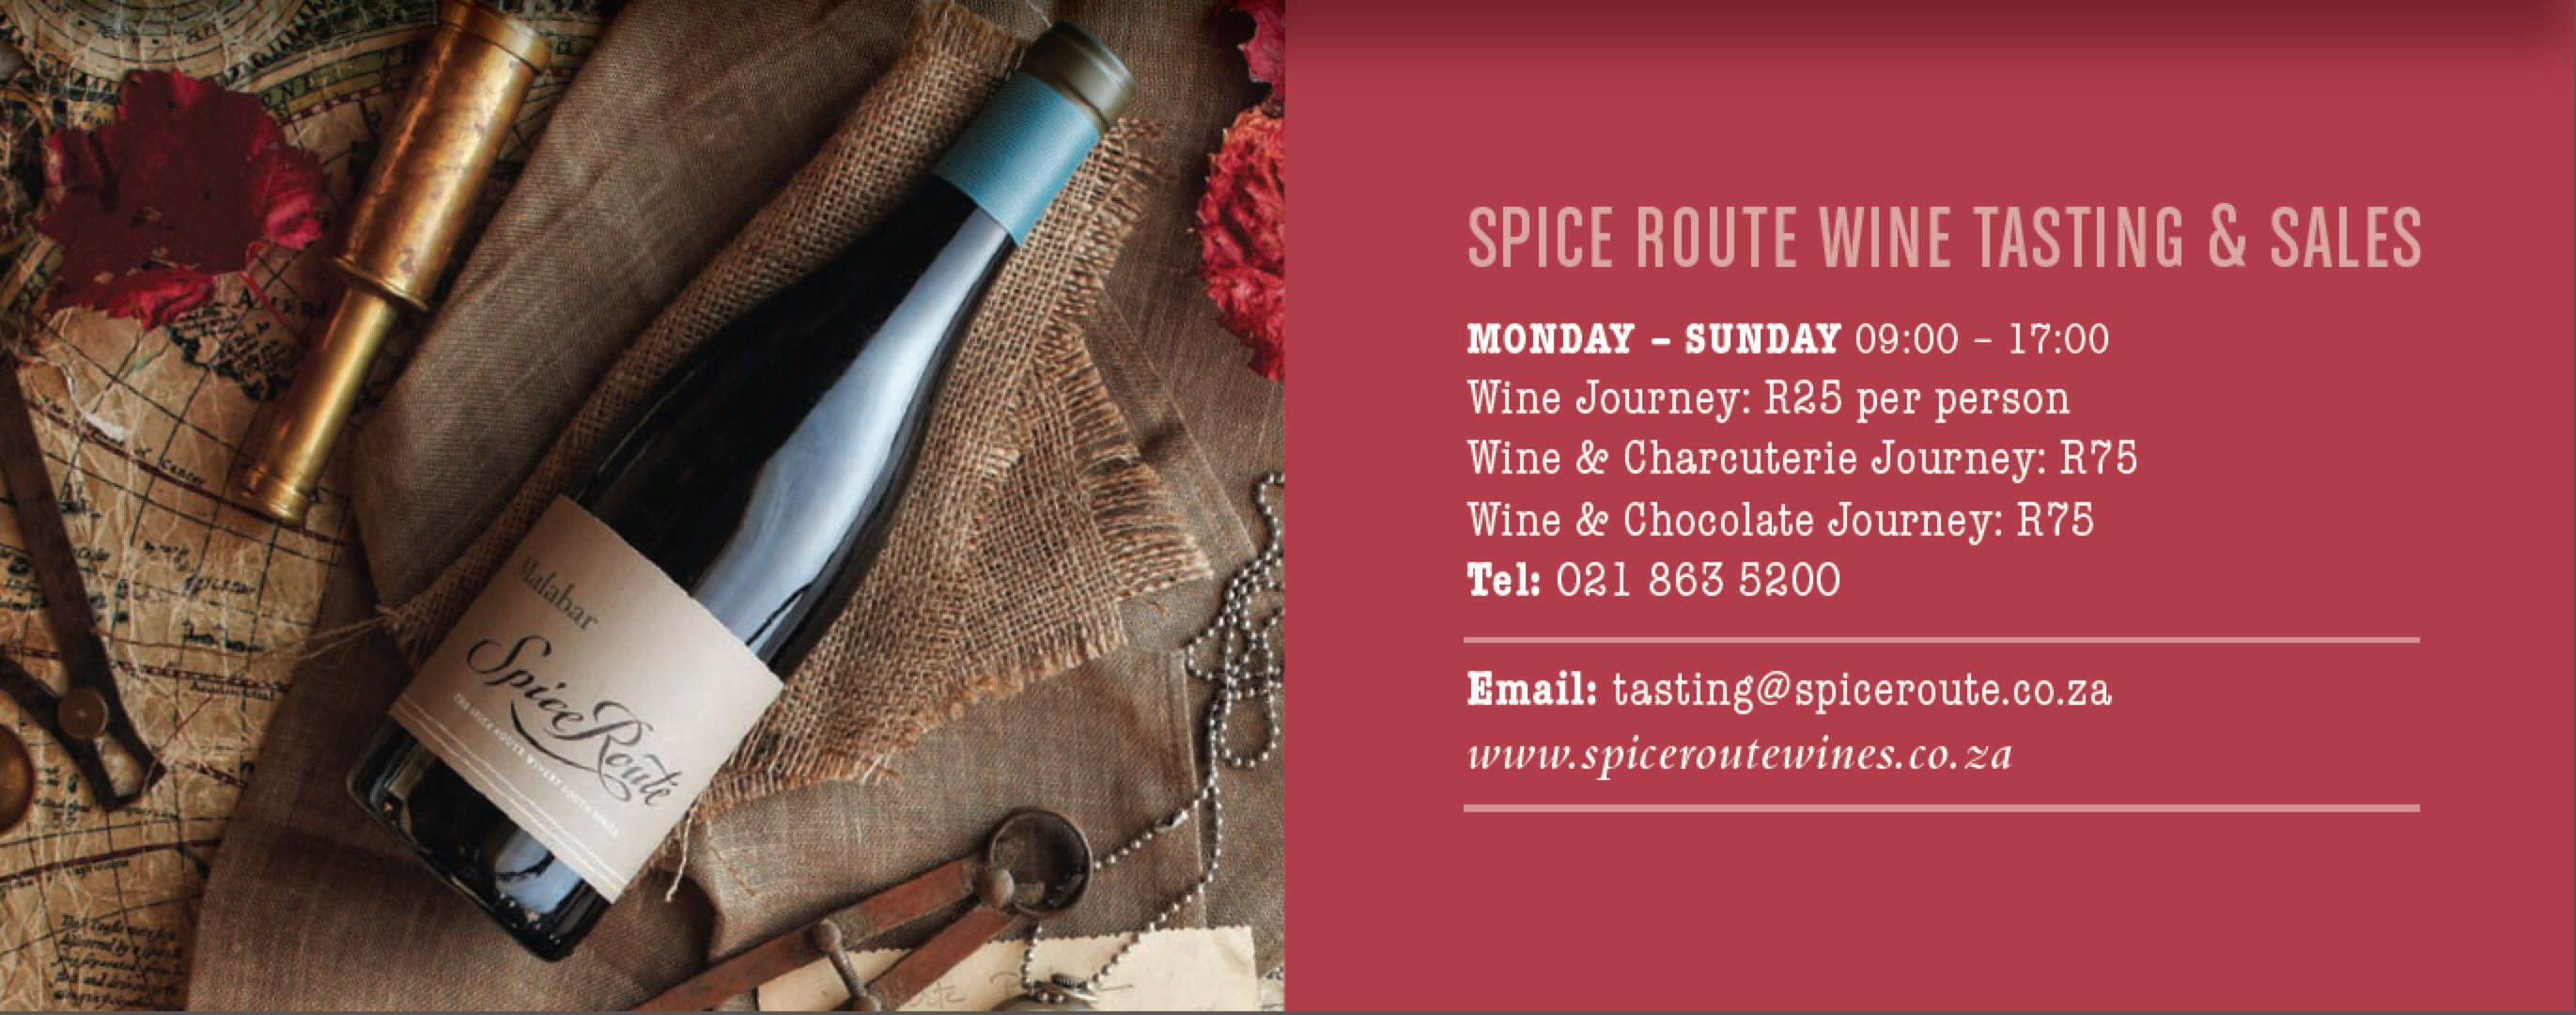 Did You Know That You Can Enjoy Three Different Types Of Wine Tastings Spiceroutewines Www Spiceroute Co Za Spices Wine Tasting Different Types Of Wine